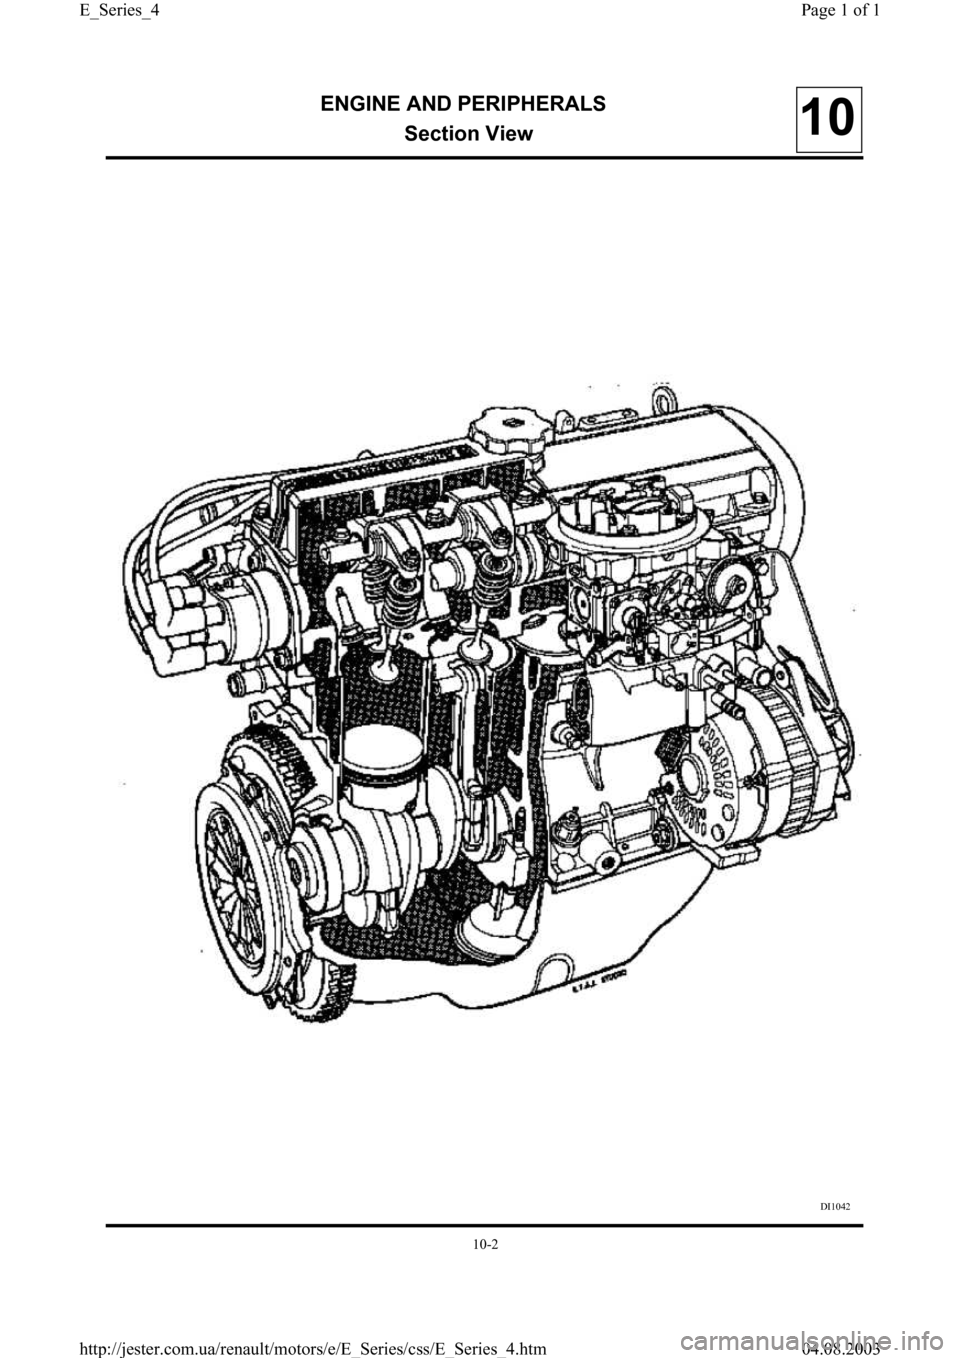 RENAULT CLIO 1997 X57 / 1.G Petrol Engines Workshop Manual, Page 4